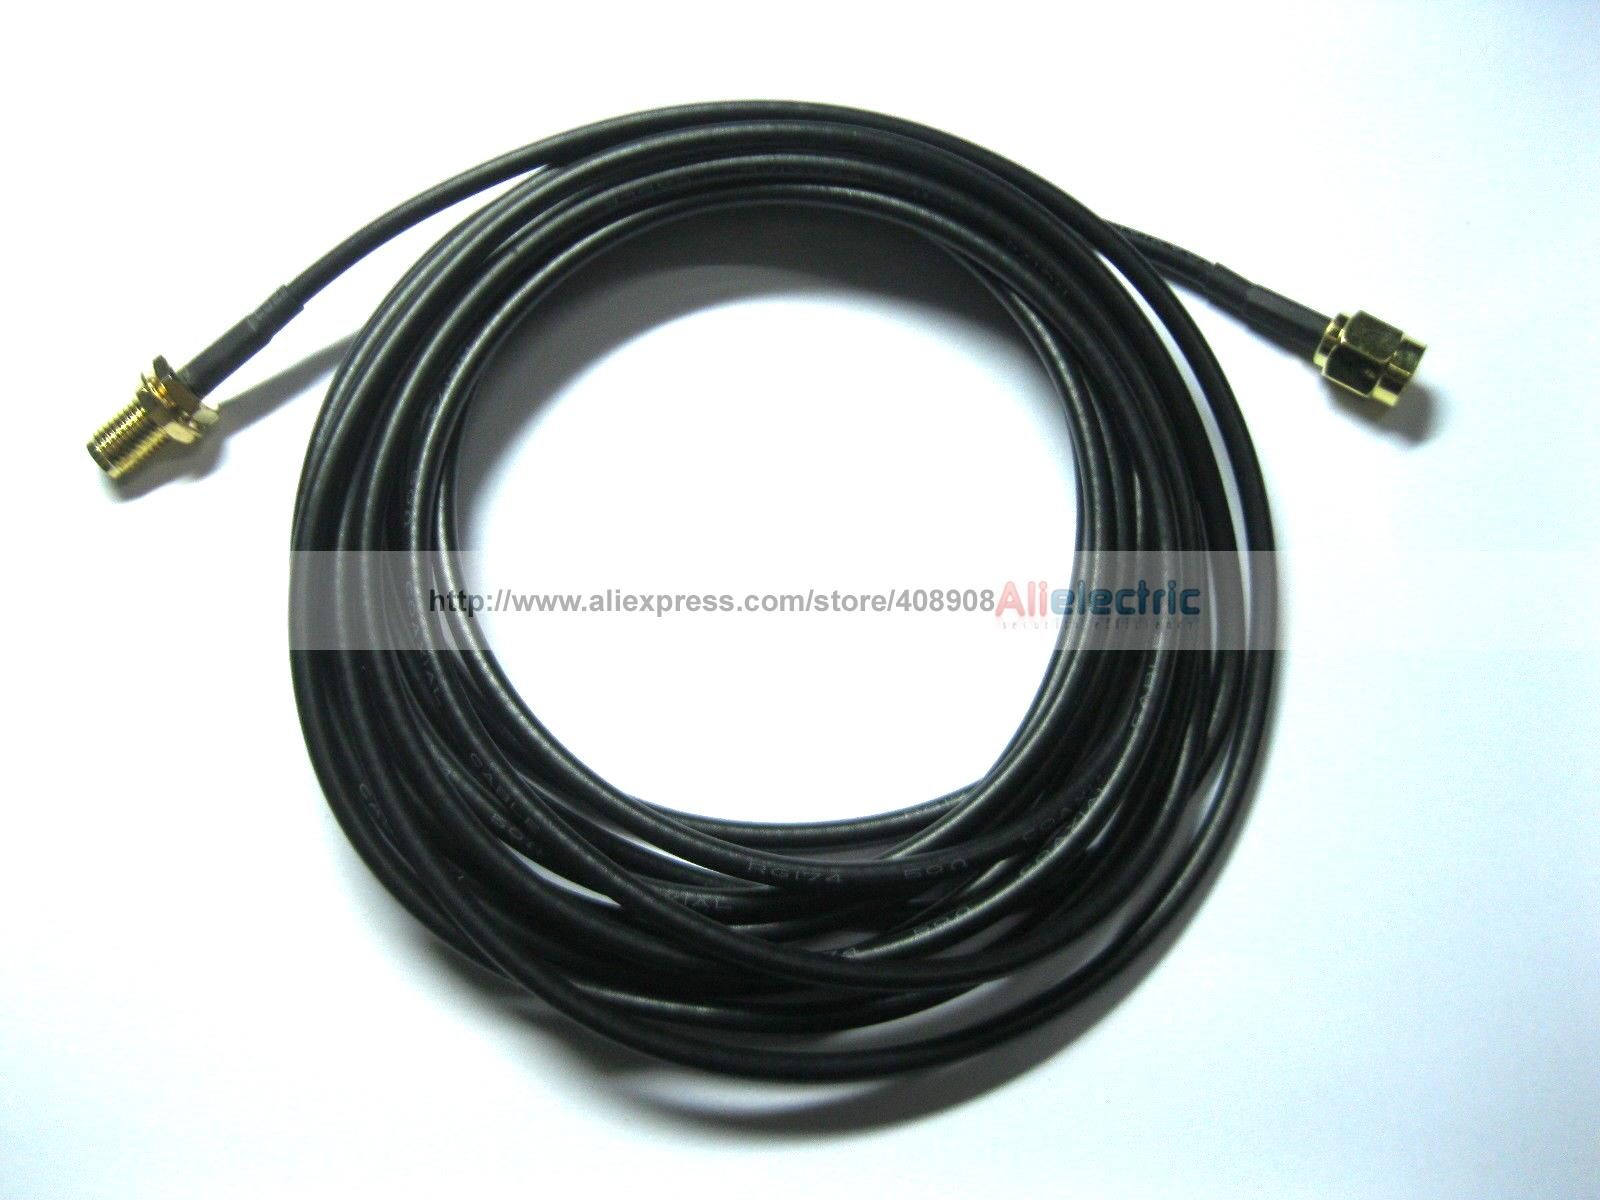 5 Pcs 3M Antenna RP SMA Coaxial Cable for WiFi Router Black 300cm <br>